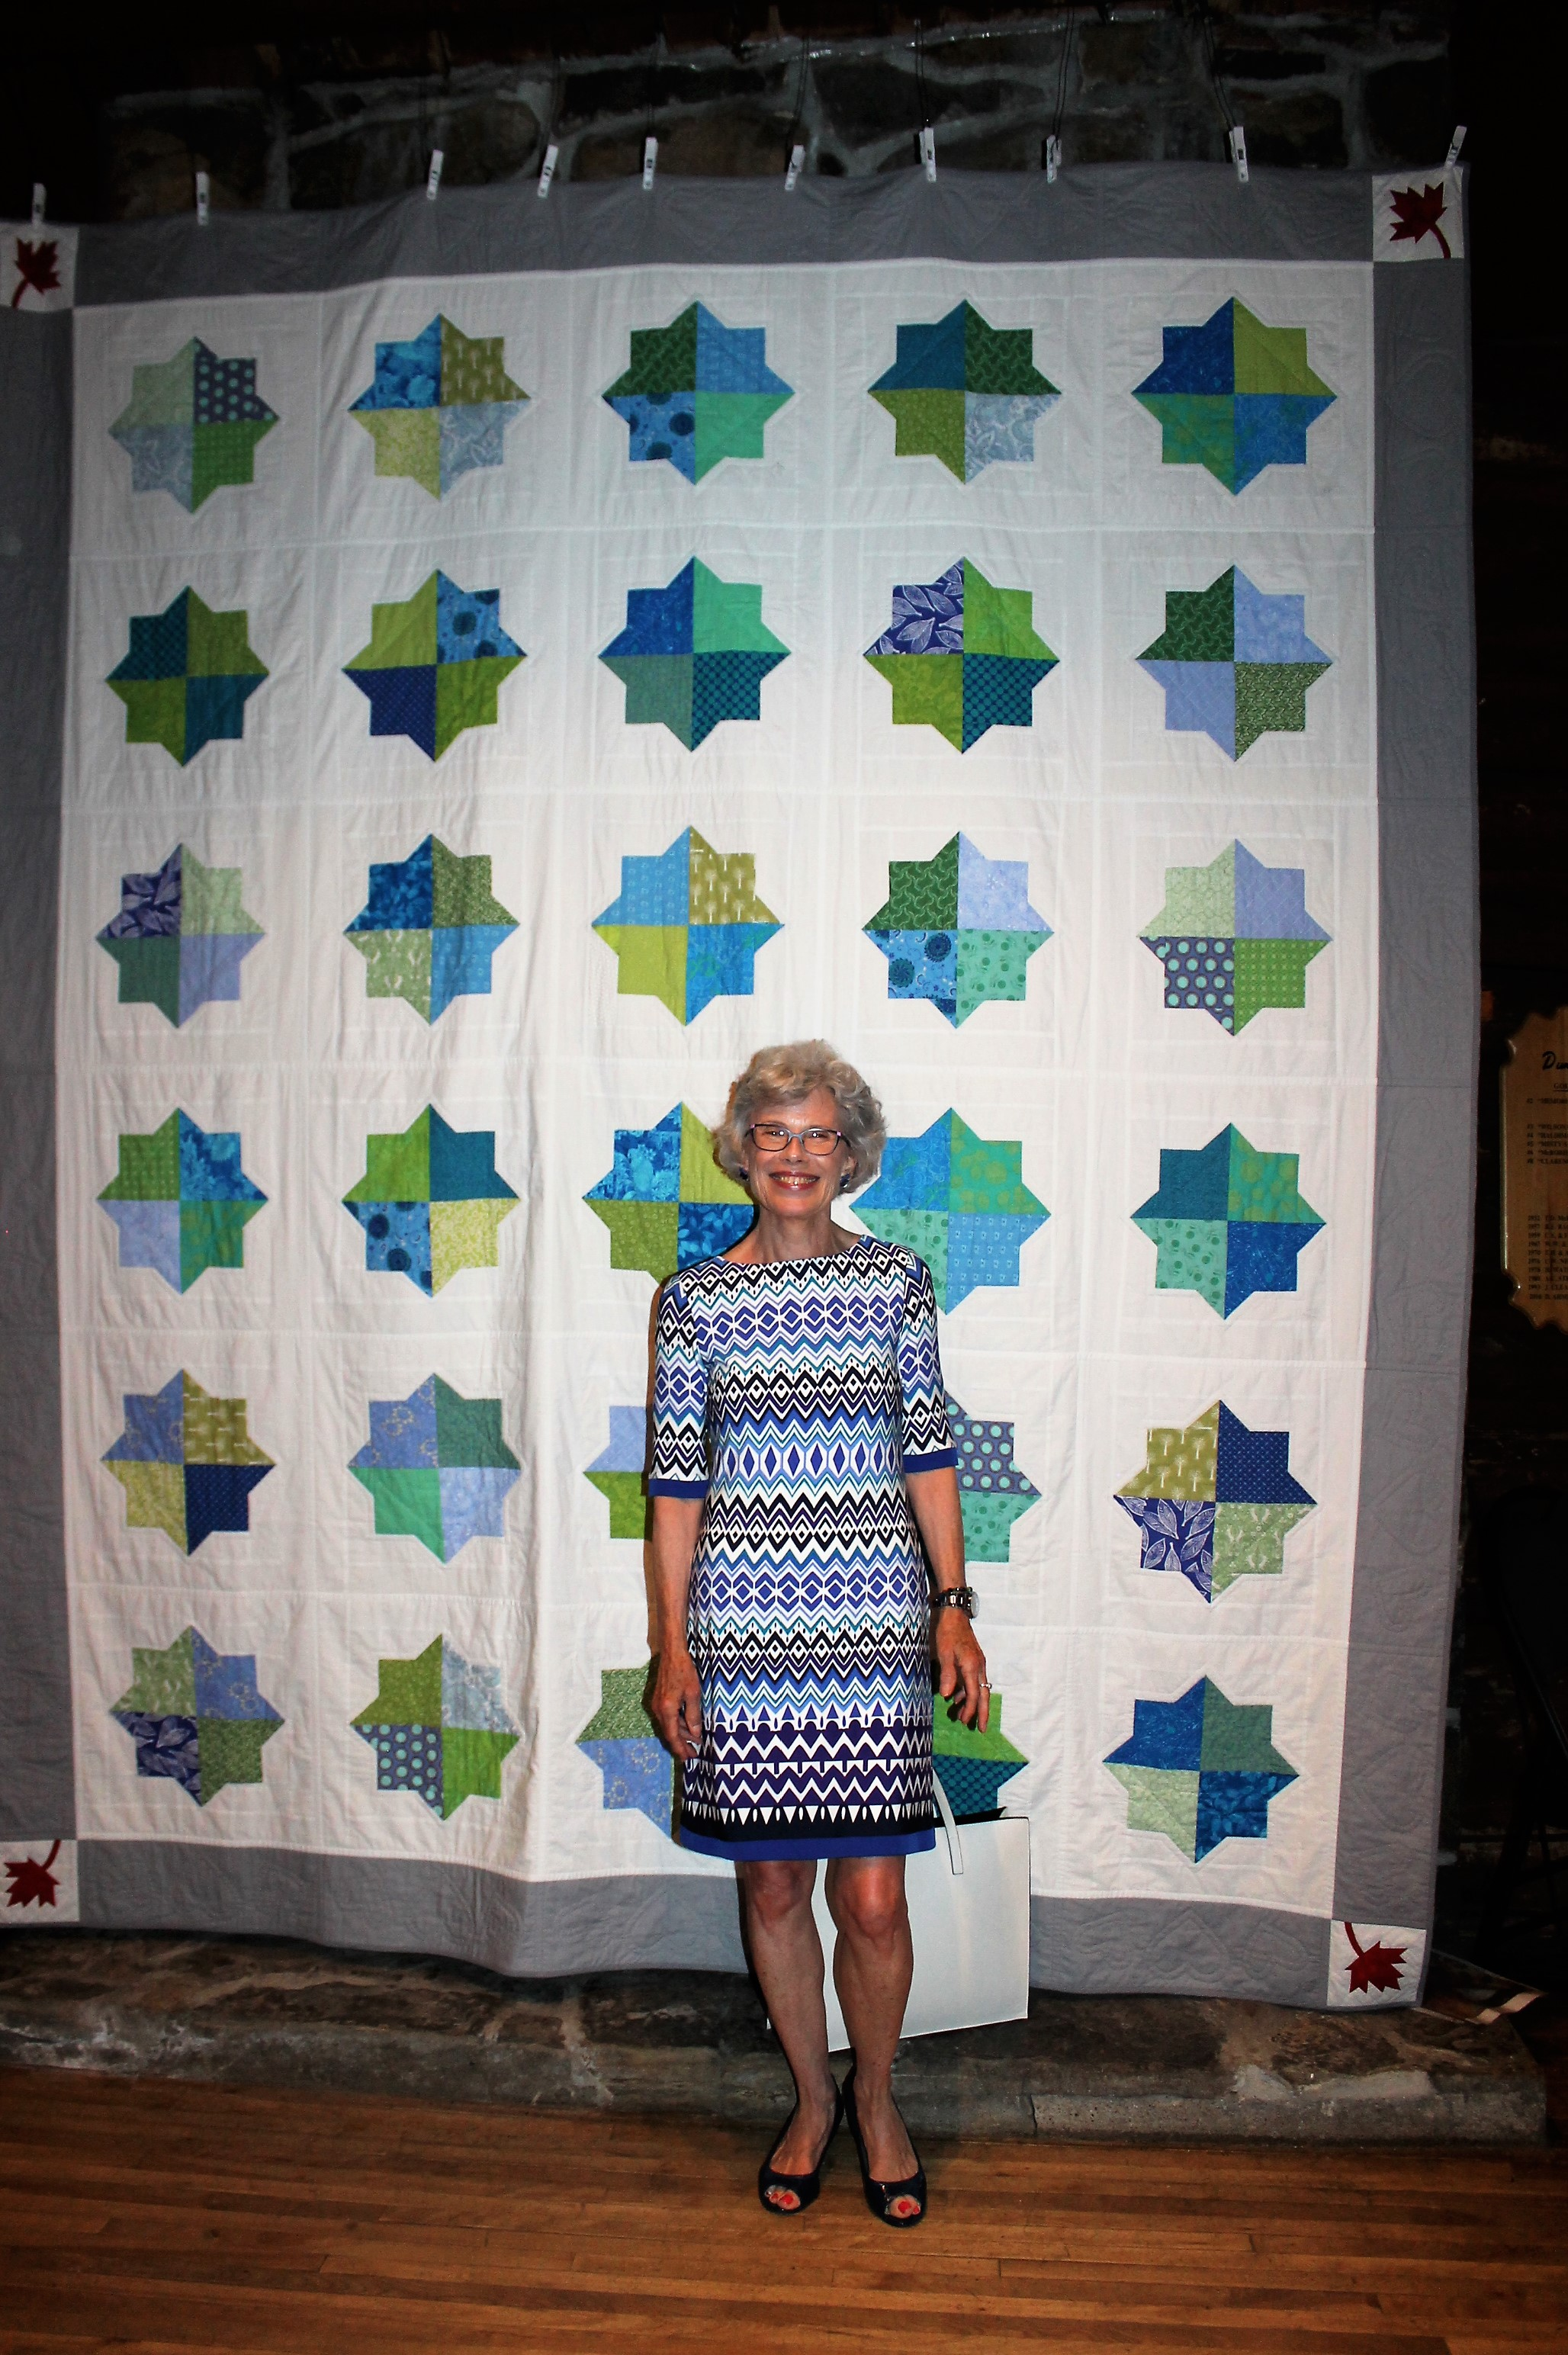 Sue Nish wins the quilt!